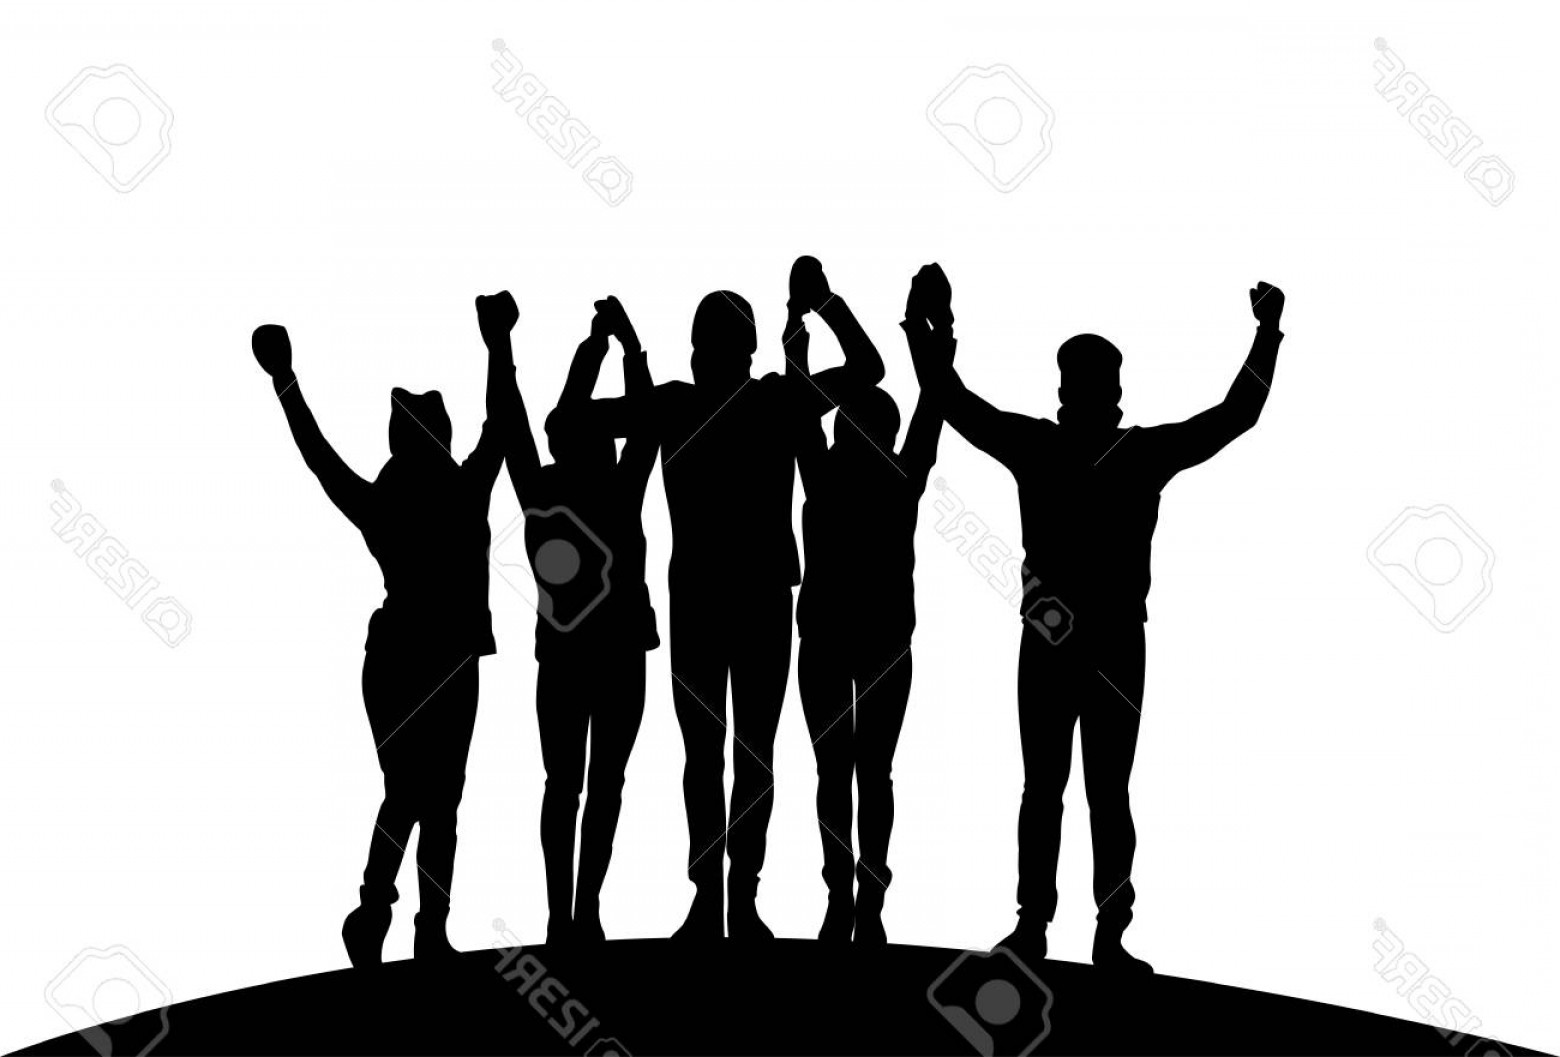 Sillouhette Vector Group: Photostock Vector Group Of Businesspeople Holding Raised Hands Happy Successful Team Black Silhouettes Vector Illustra